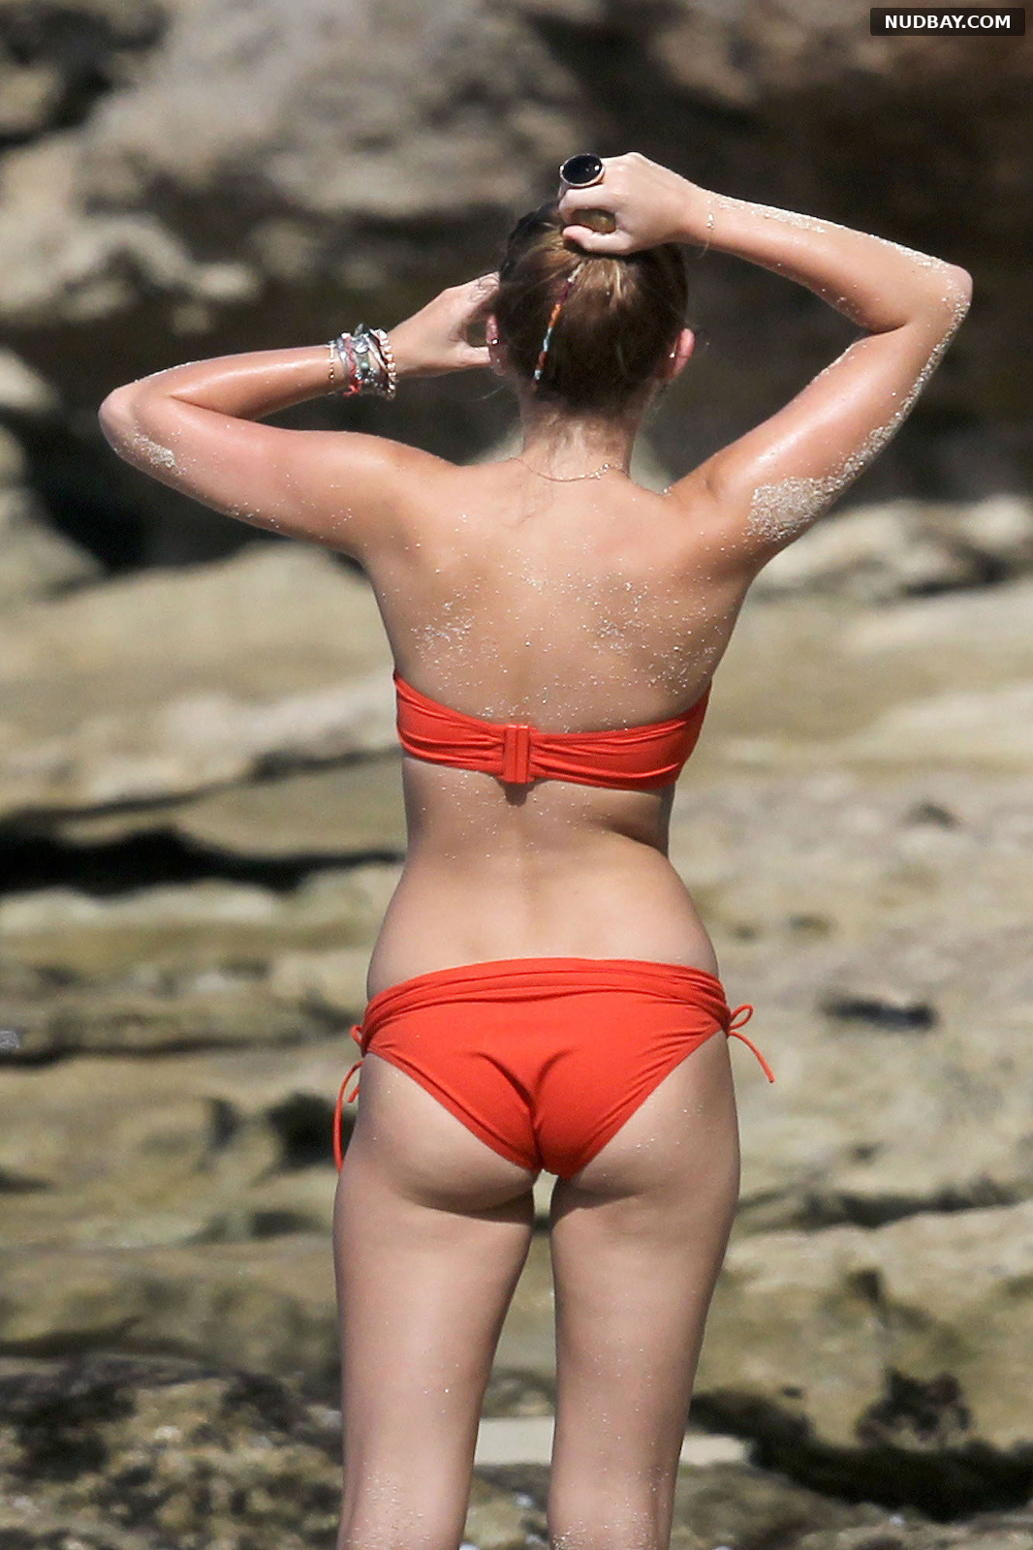 Miley Cyrus Ass at the Beach in Hawaii Dec 2011